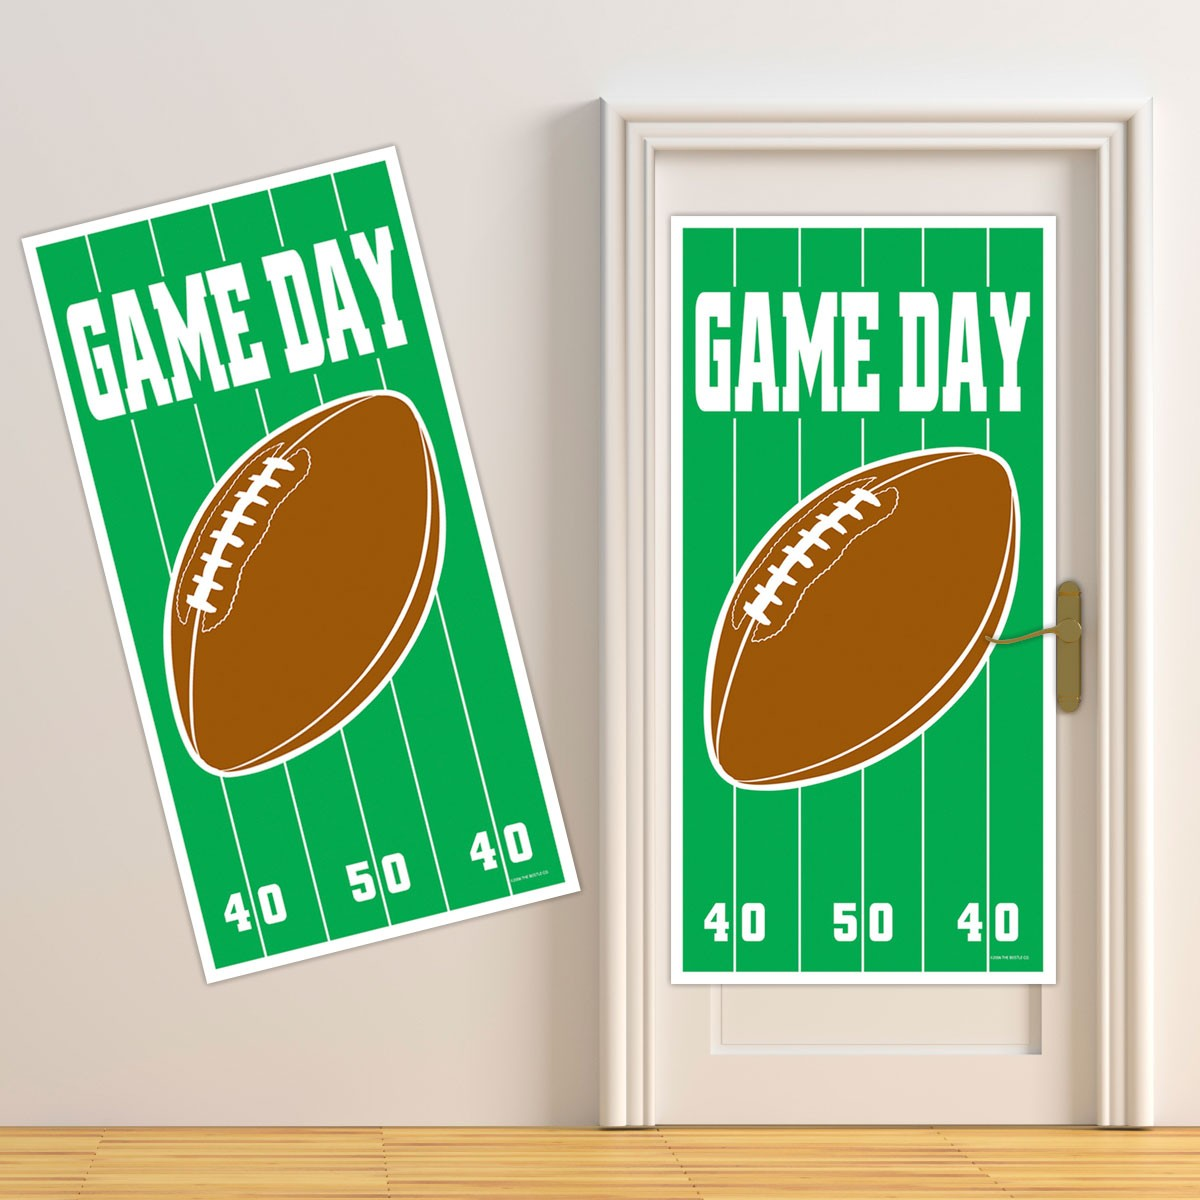 Football Game Day Door Cover